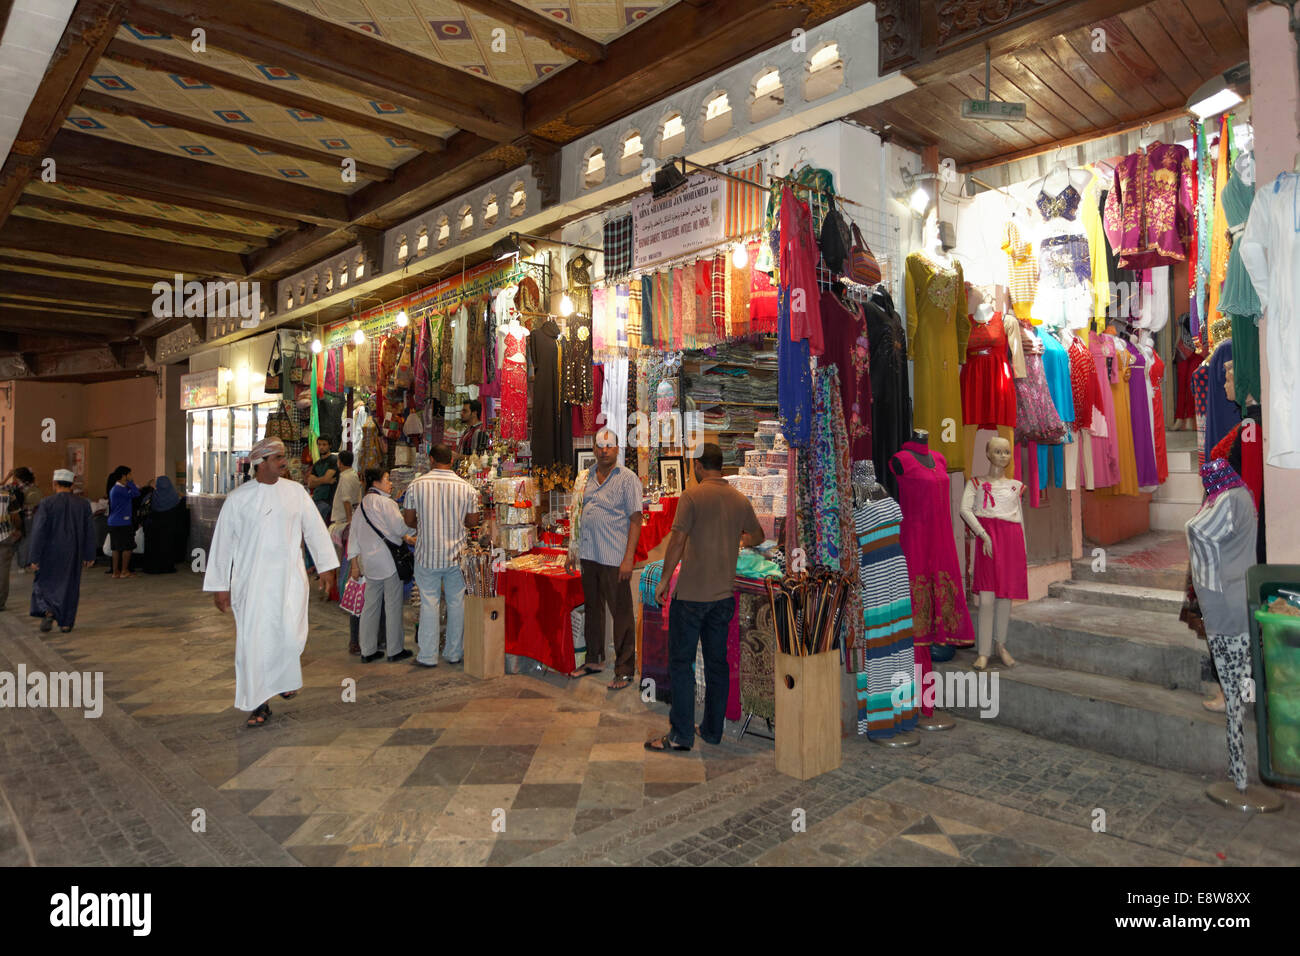 Customers and shops in the Muttrah Souq market, Muttrah, Muscat, Oman - Stock Image